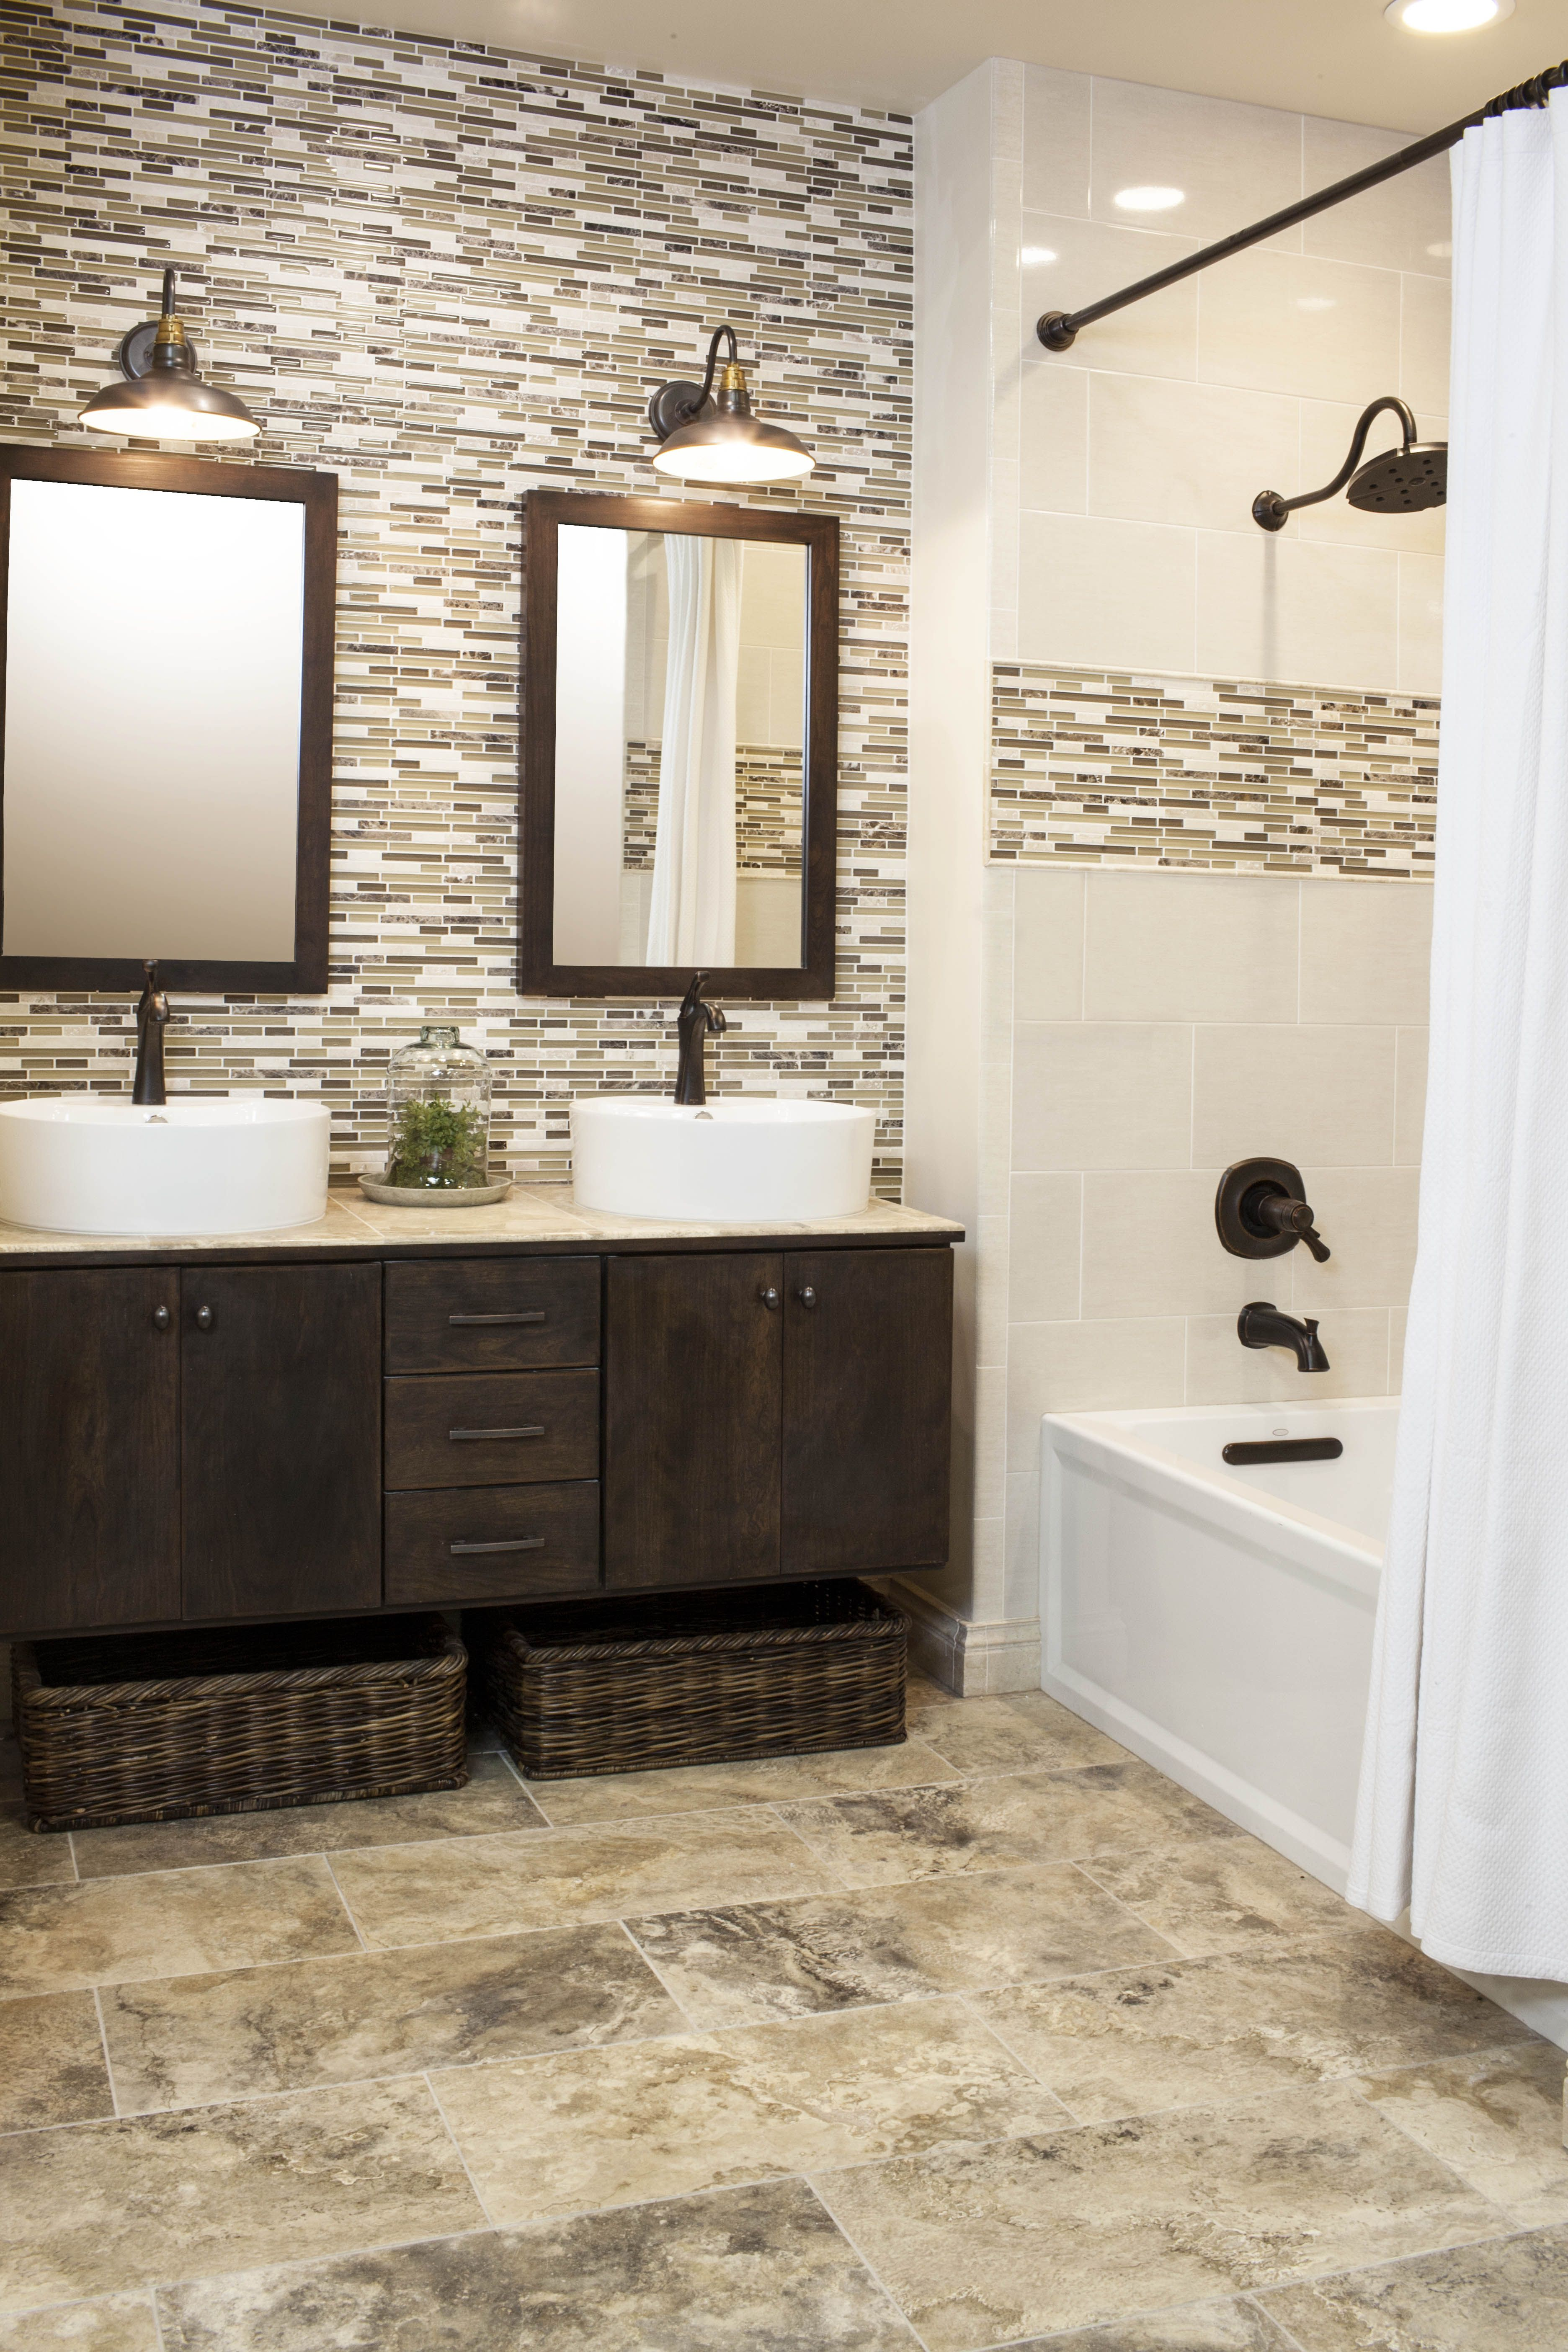 How Much Budget Bathroom Remodel You Need? | Pinterest | Travertine ...